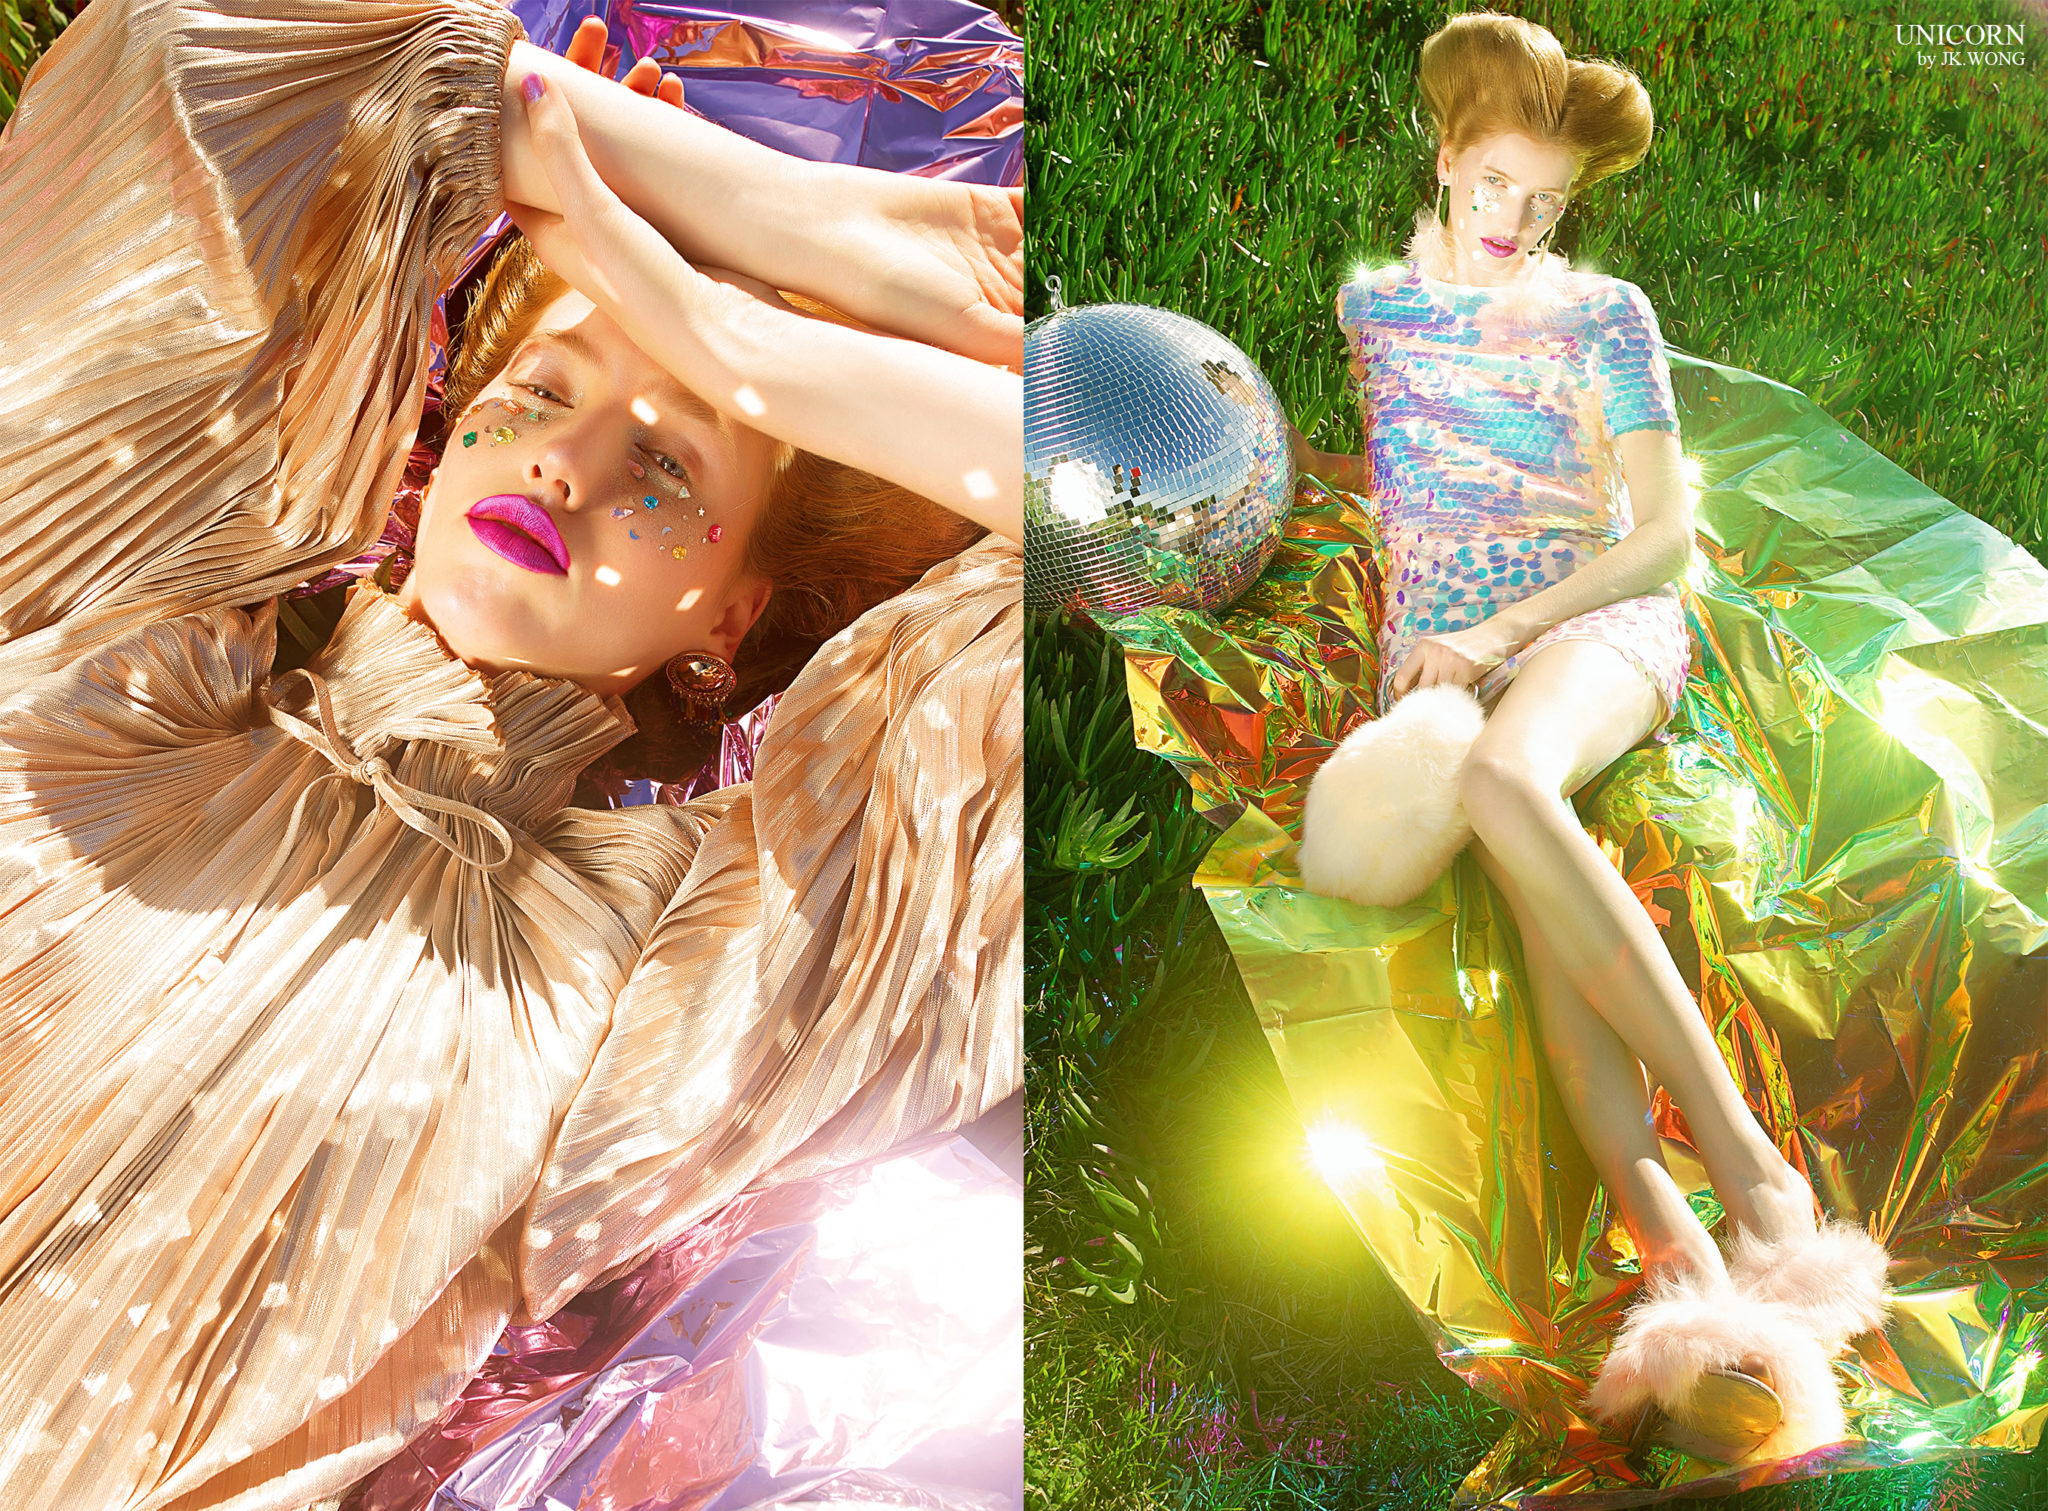 """""""Unicorn"""" by JK Wong featured in Vogue Italia"""